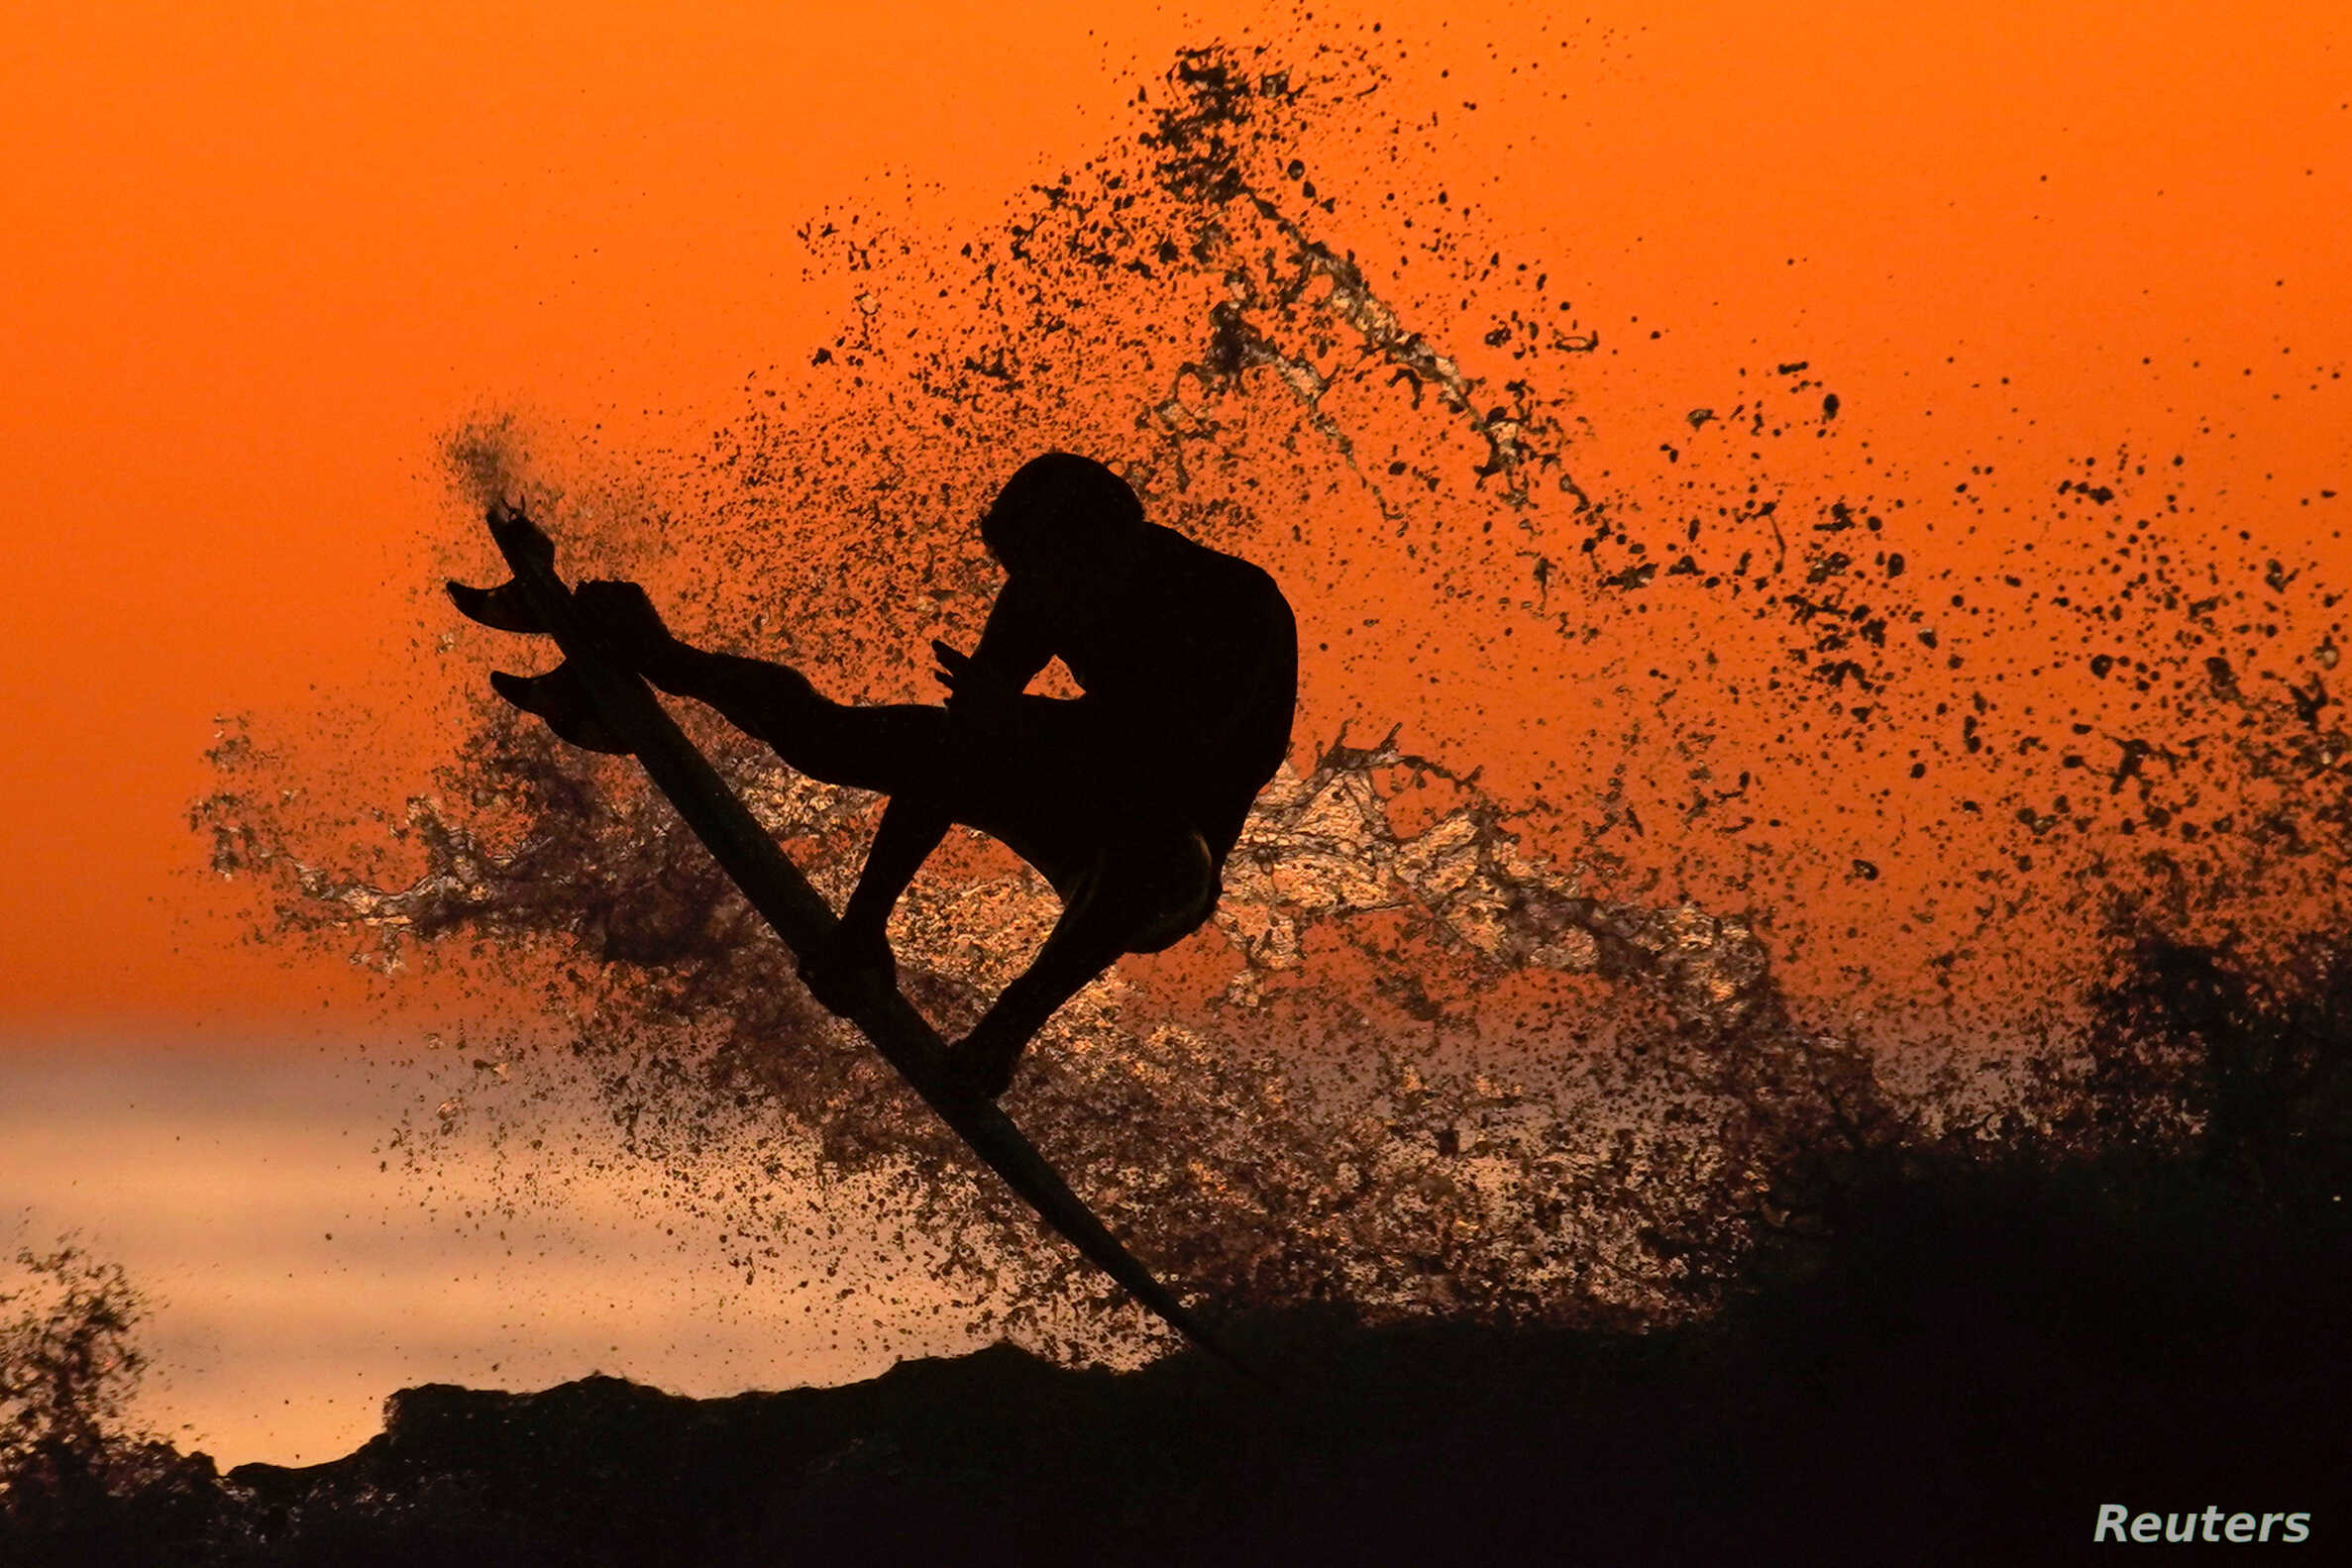 A surfer surfs after sunset in Cardiff, California, Jan. 7, 2020.